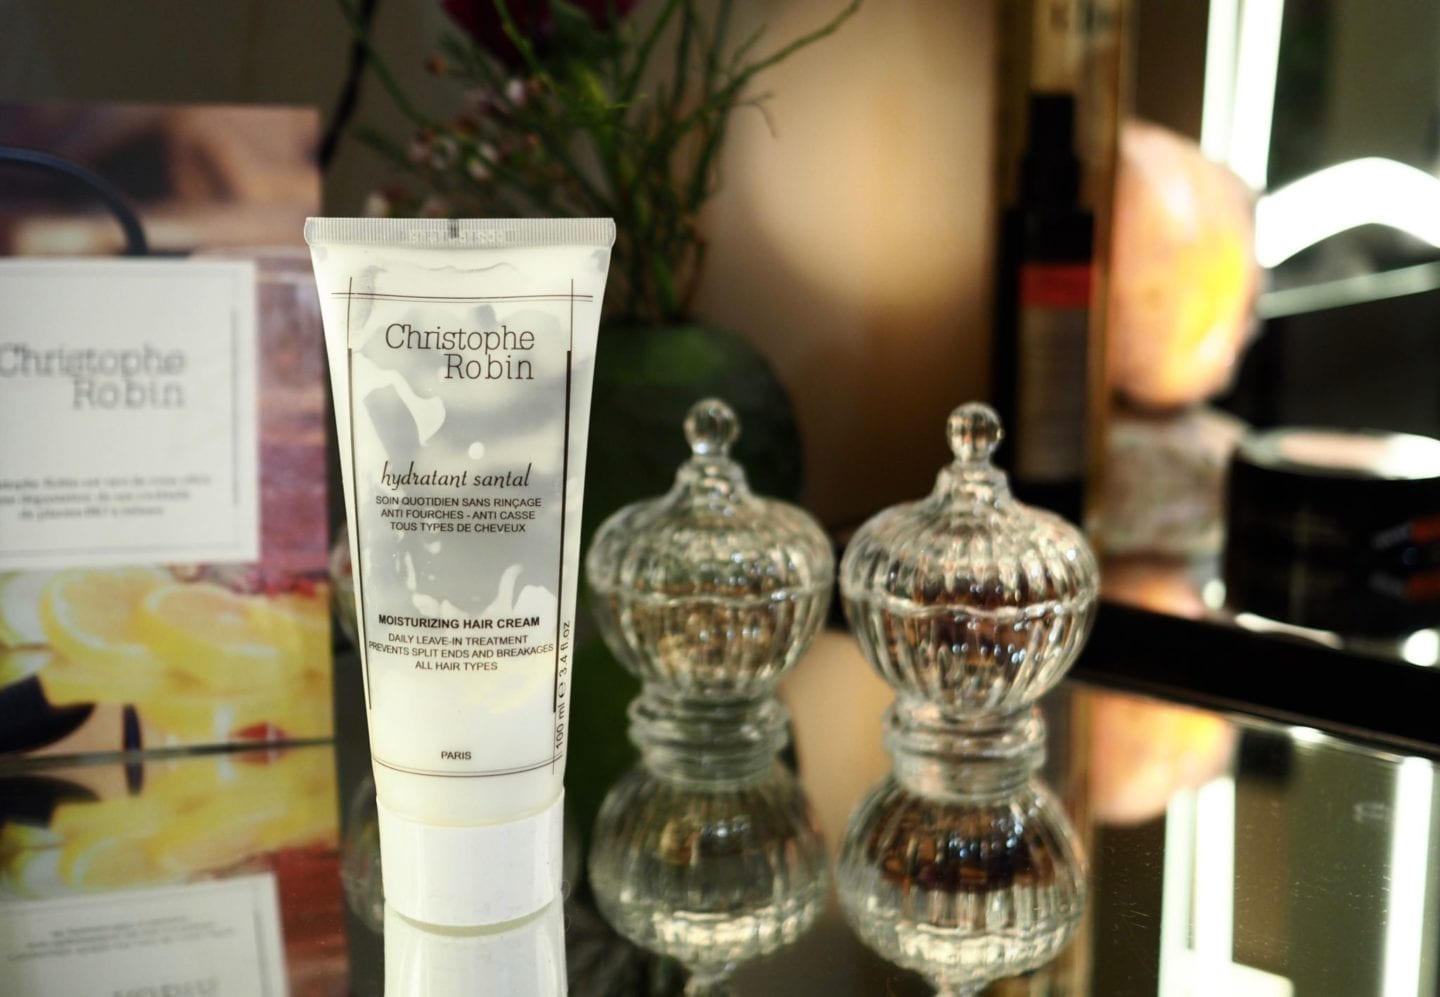 christophe-robin-hair-care-products-balm